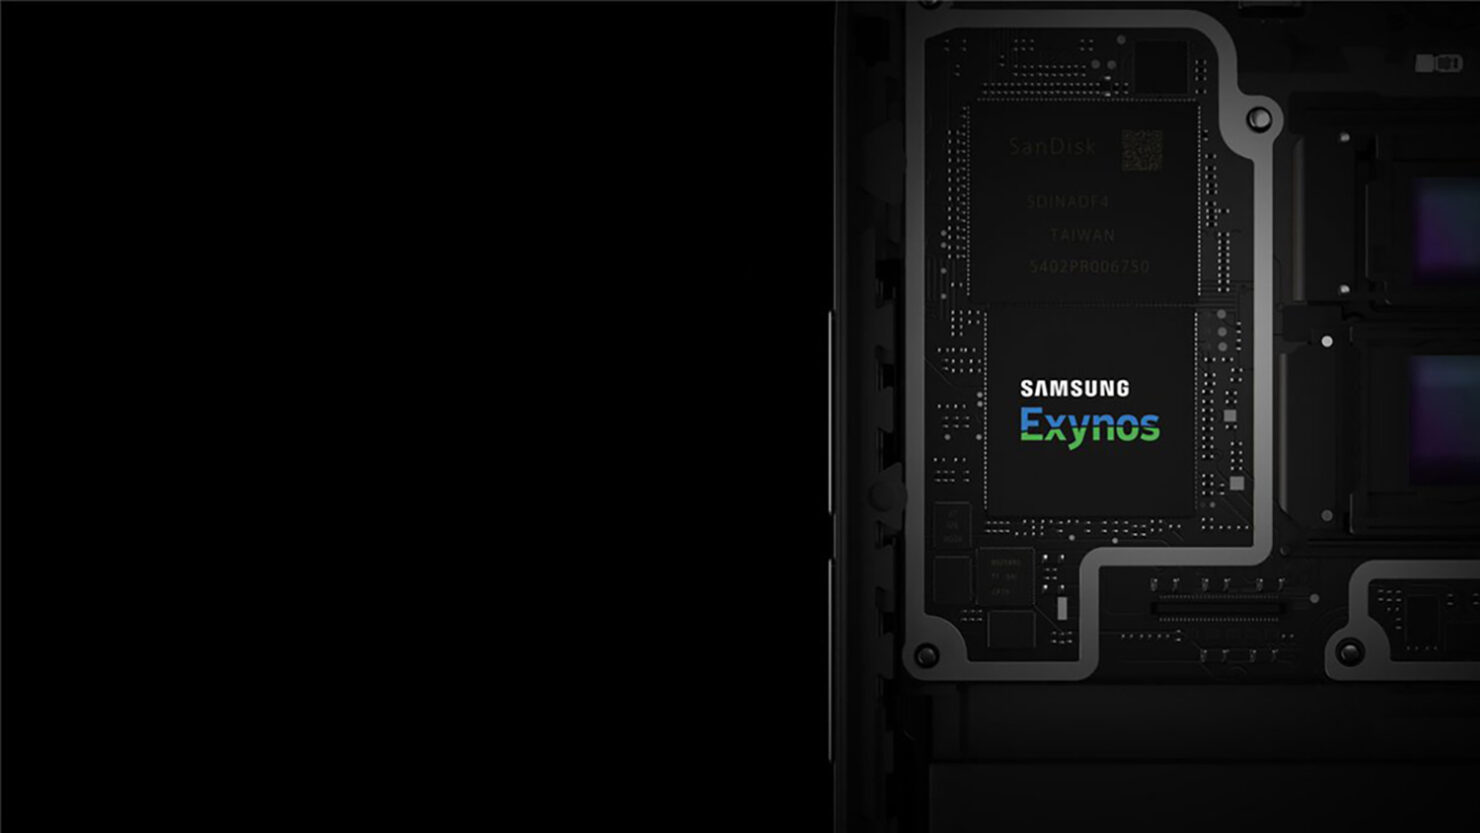 Samsung to Bring Its Exynos Chipsets to Computers in the Future, According to Tipster